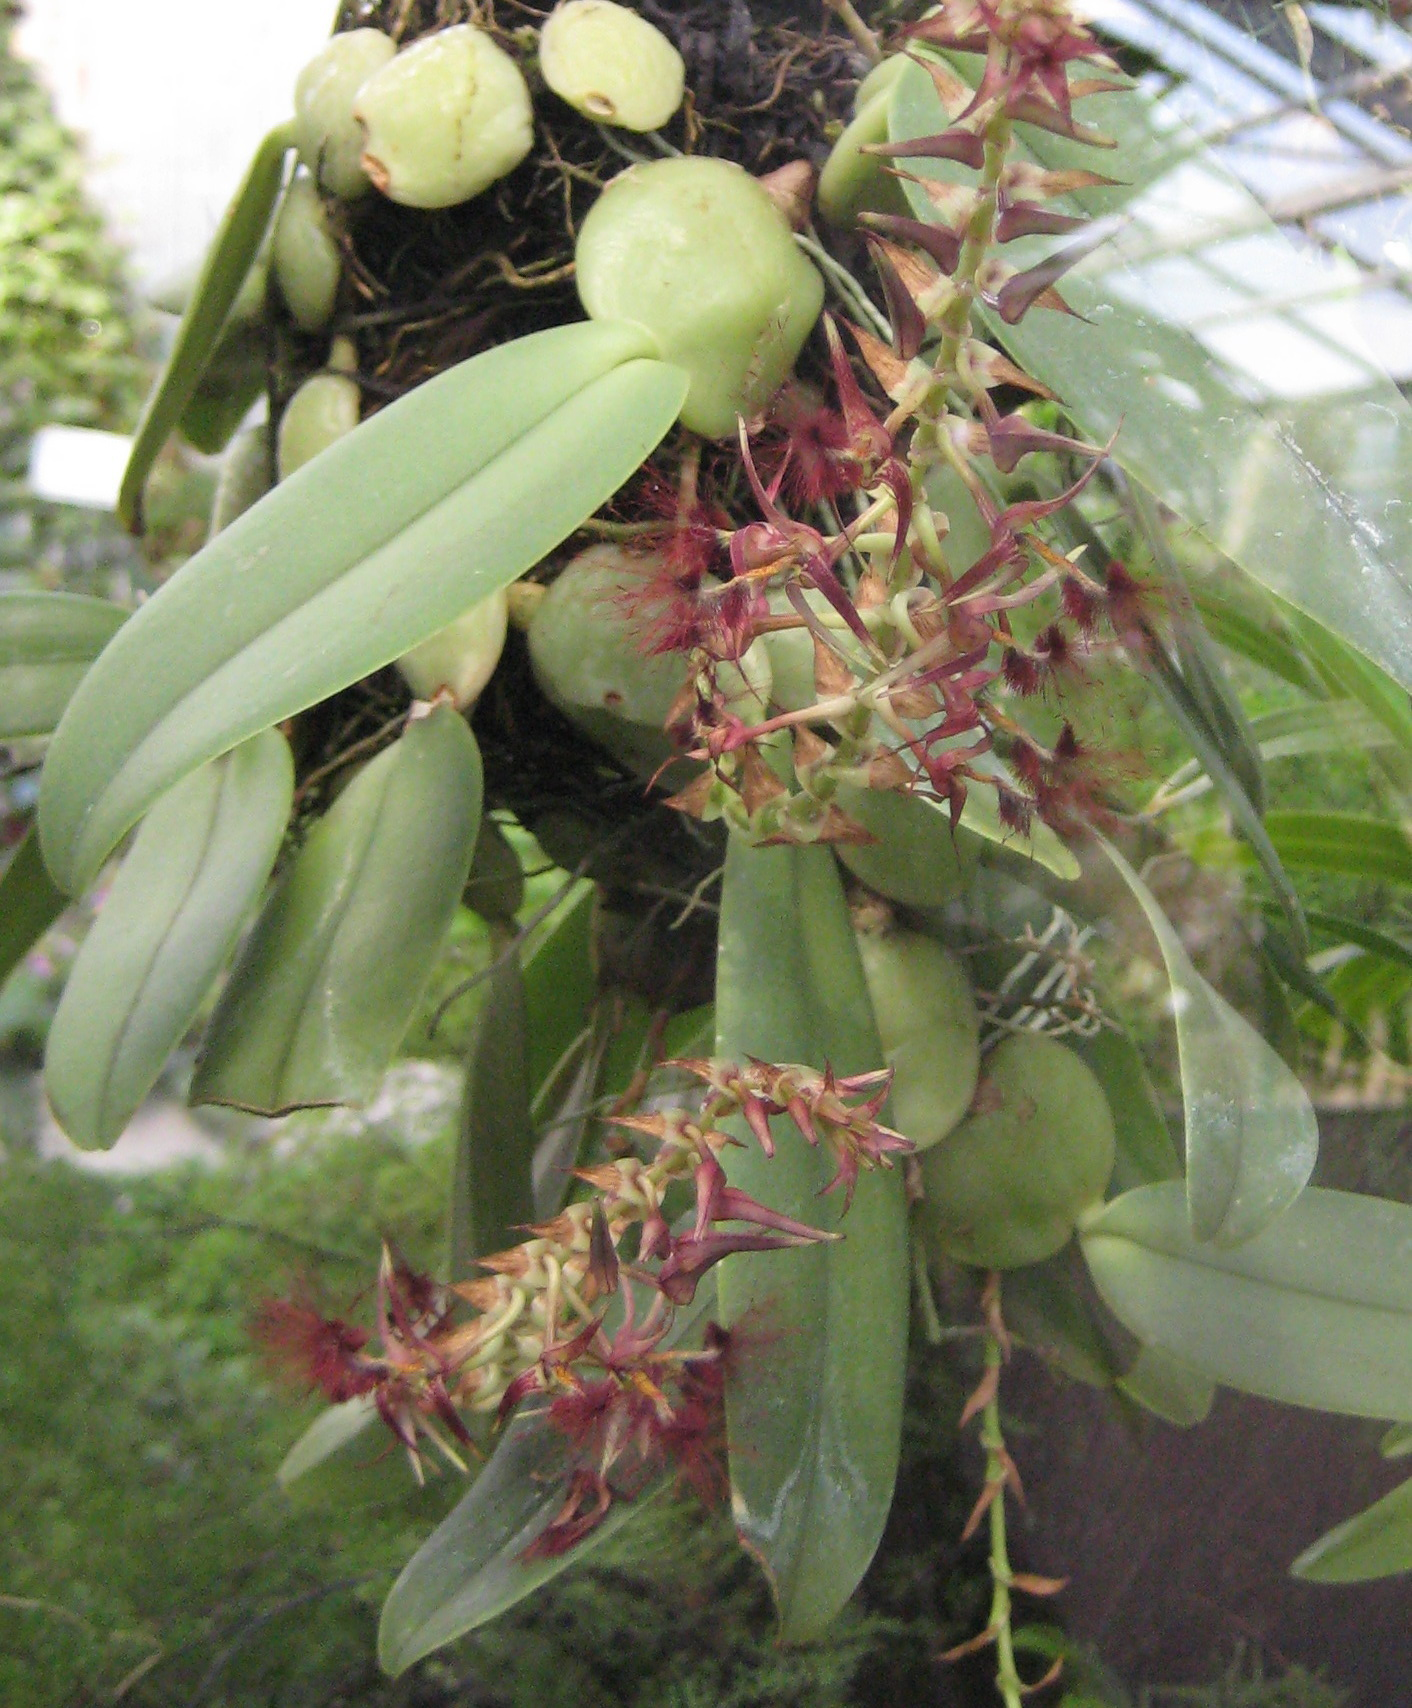 http://upload.wikimedia.org/wikipedia/commons/1/1d/Bulbophyllum_barbigerum_01.jpg